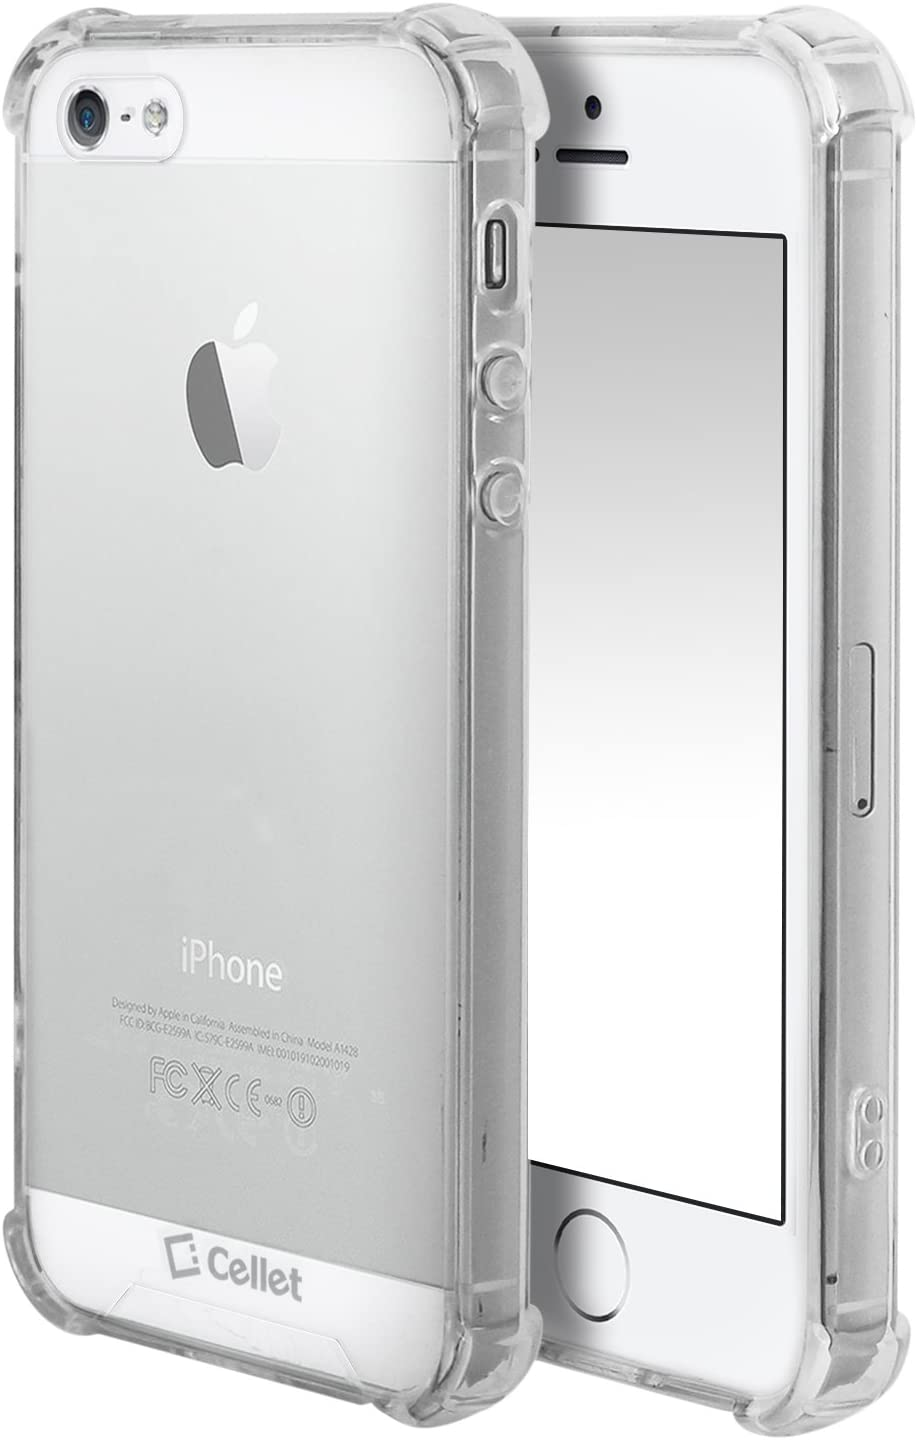 iPhone 5, 5s, SE Case – Apple Cell Phone Case for iPhone 5, 5s, SE by Cellet- Retail Packaging - Clear